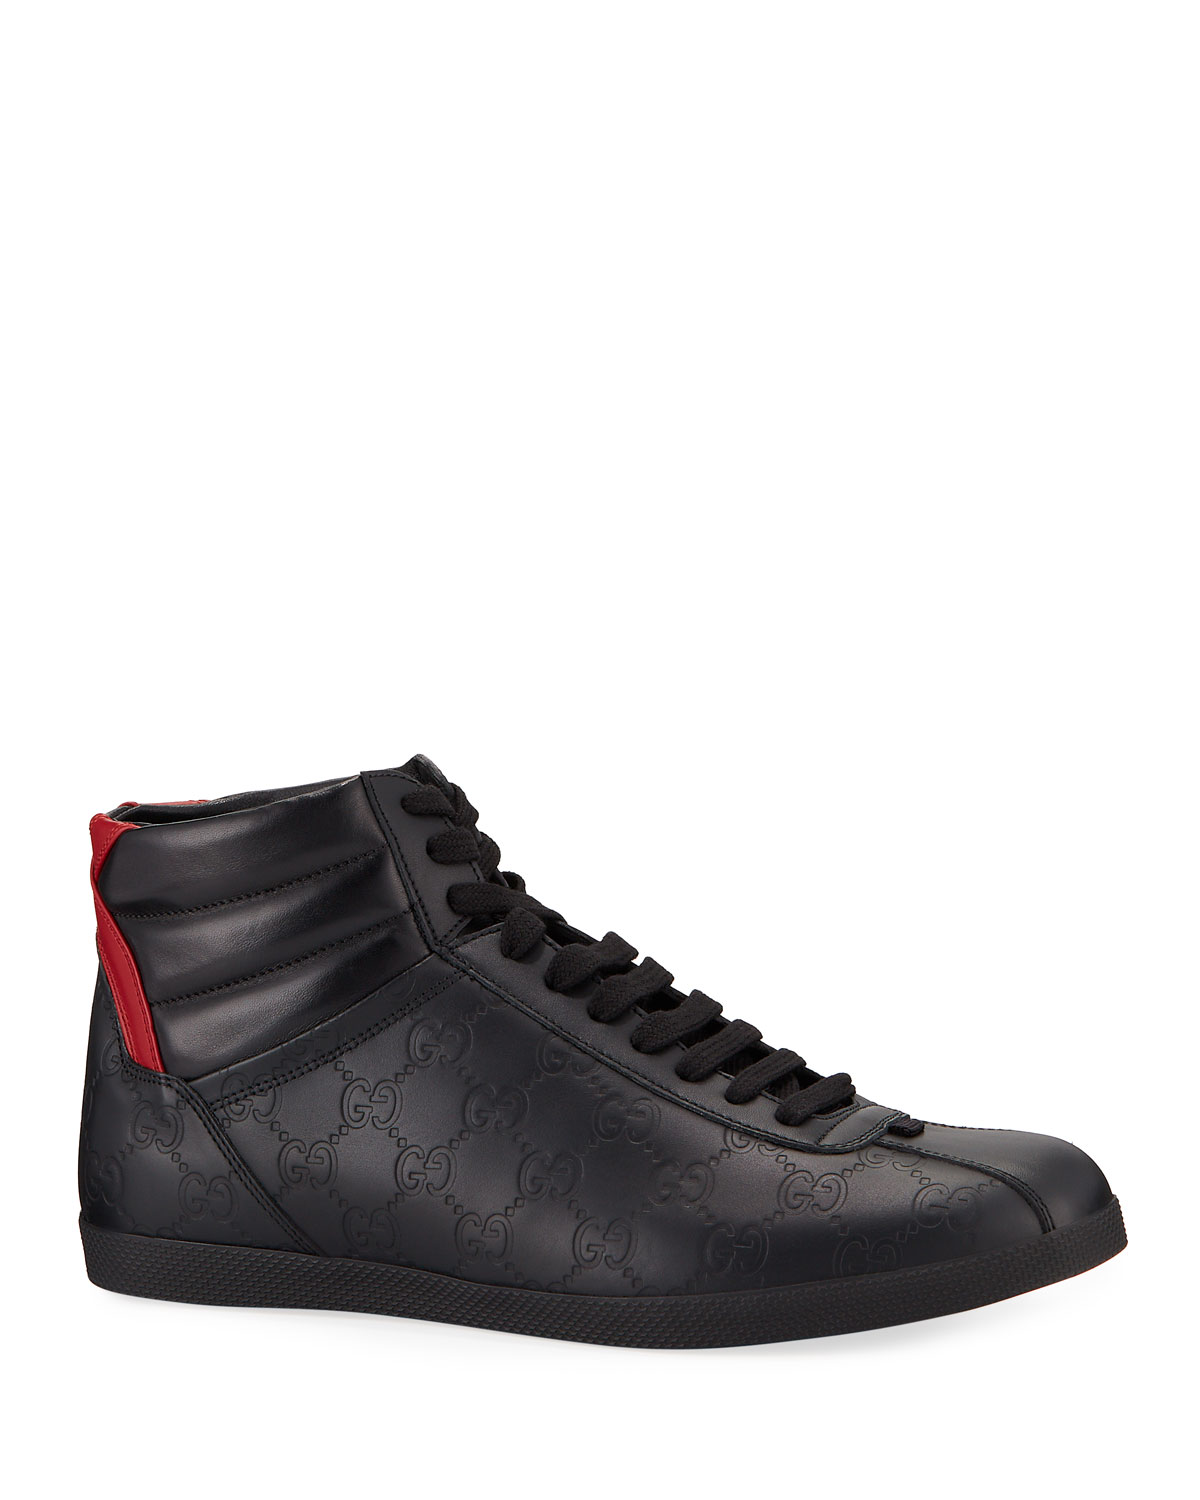 Gucci Men's Bambi Gg-Embossed Leather High-Top Sneakers In Black